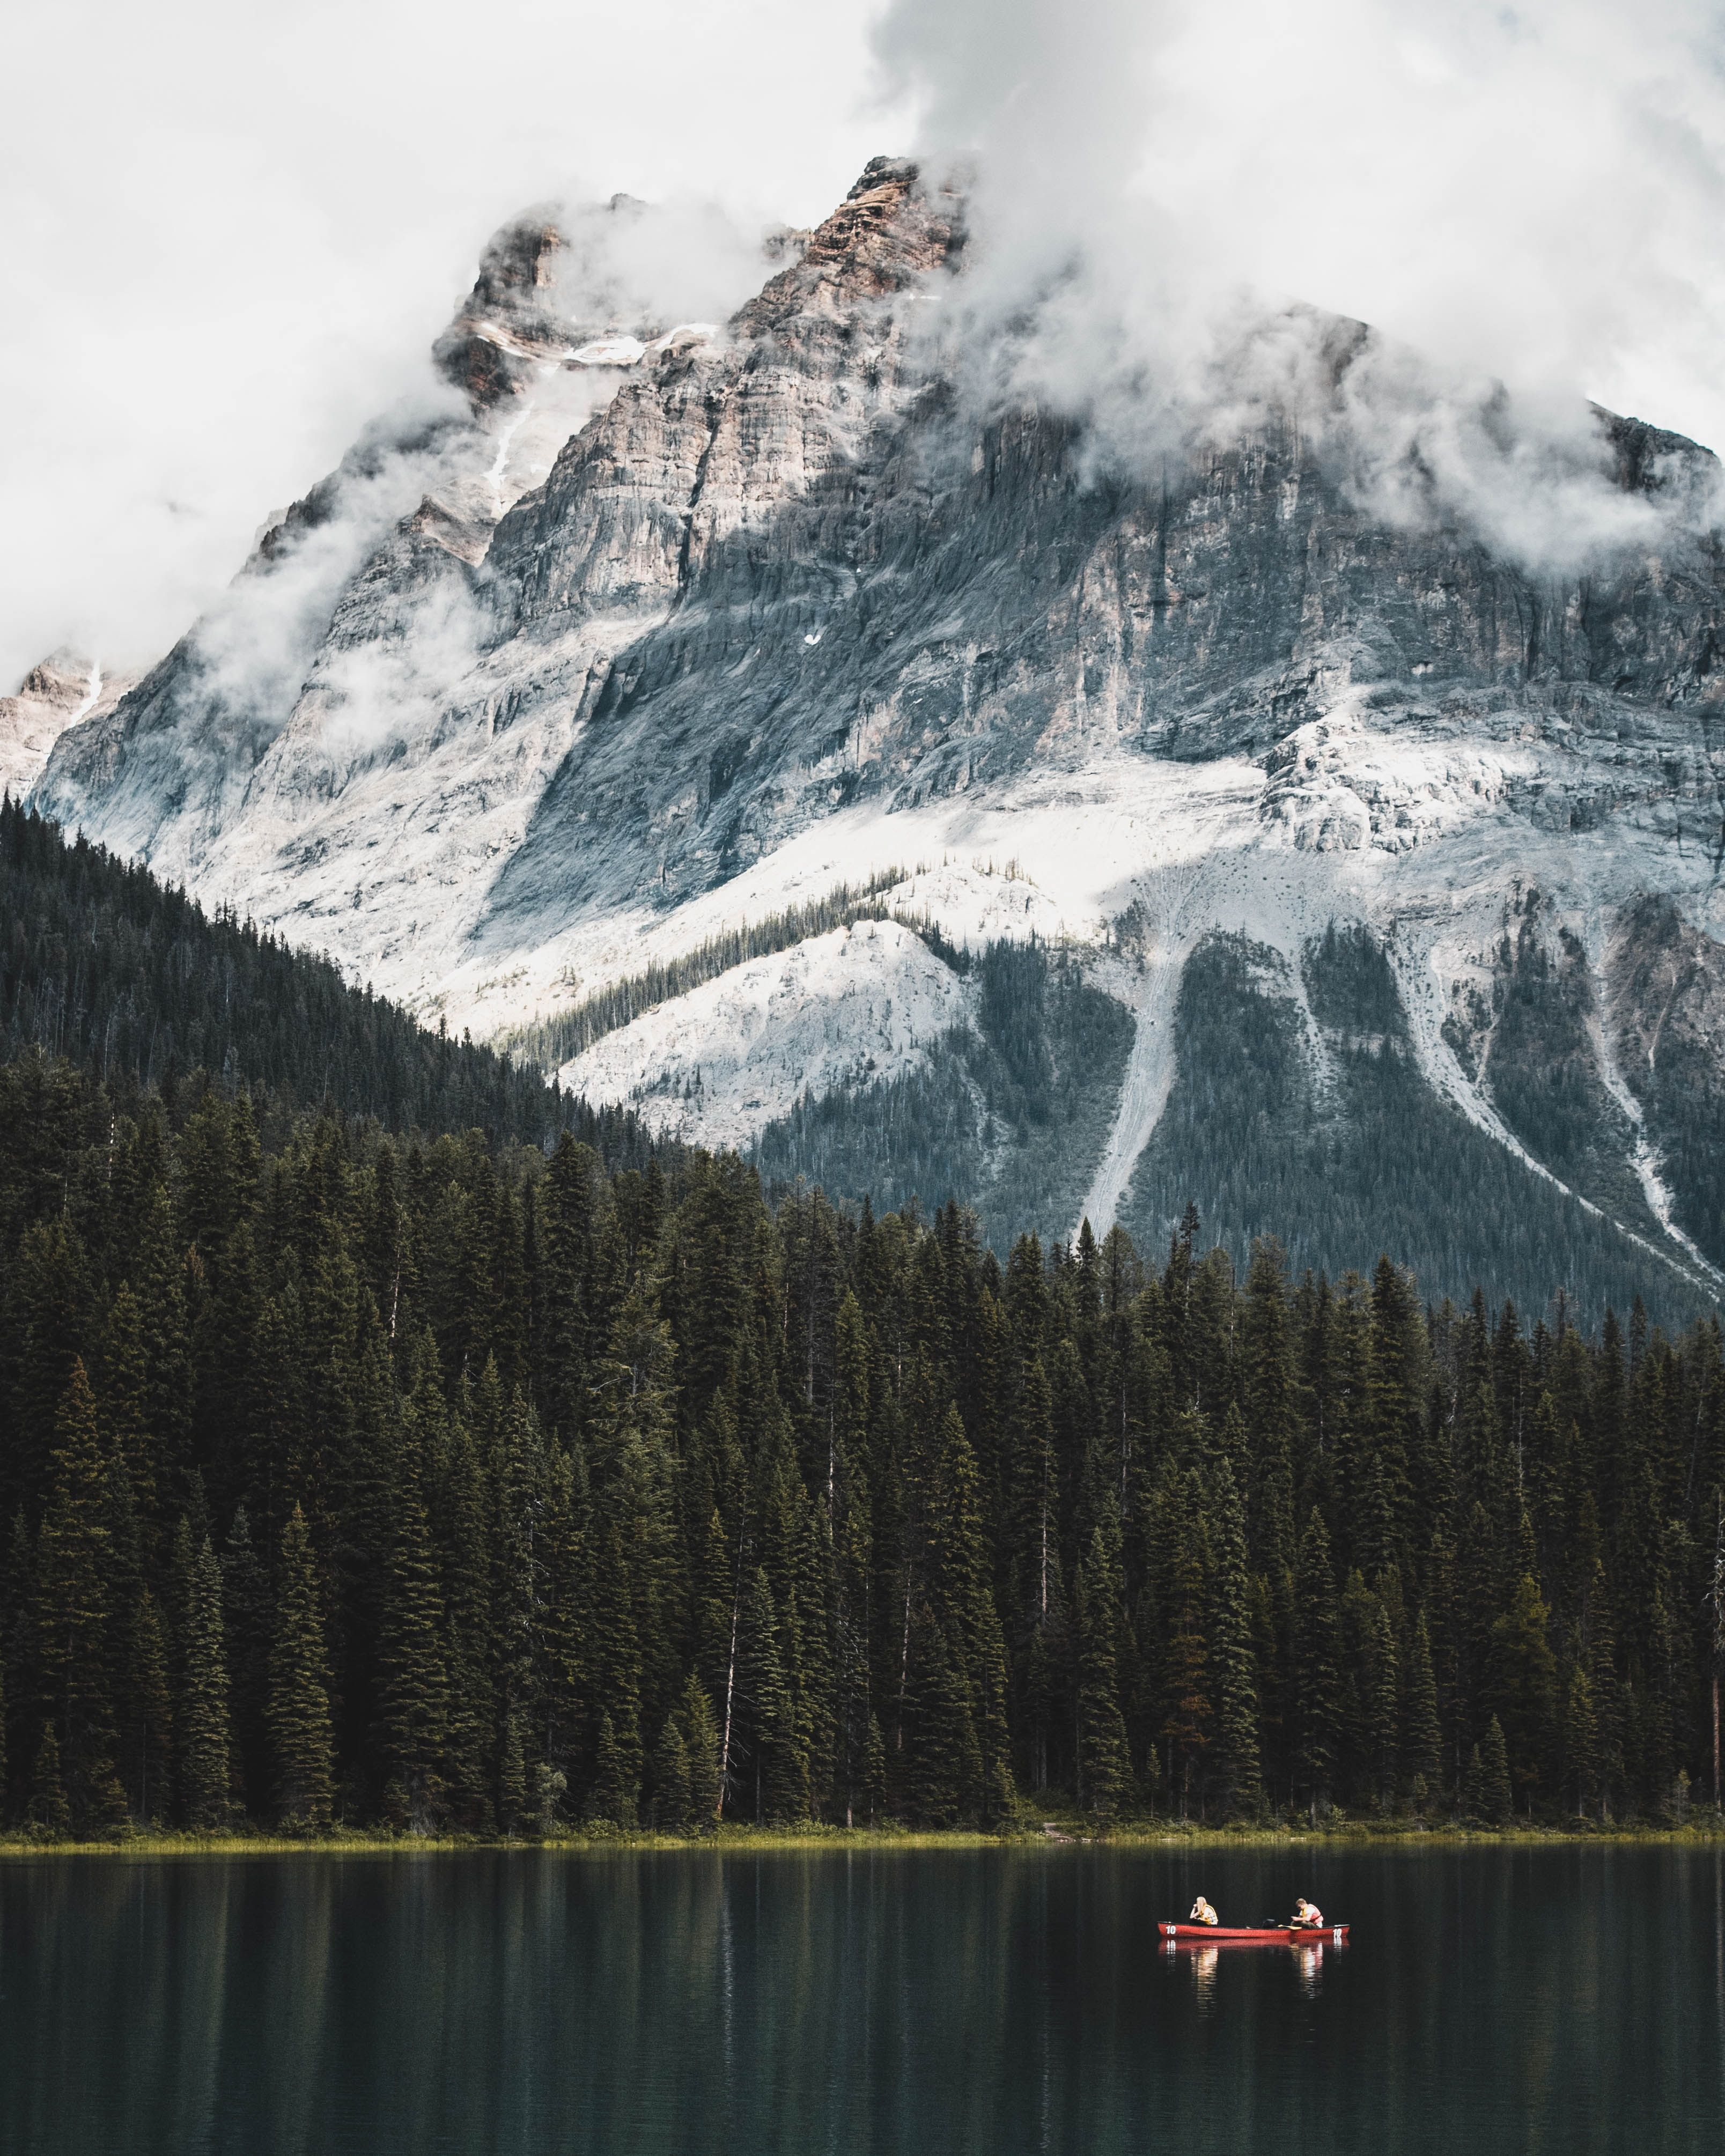 Nature Outdoors Mountain Mountain Covered With Mountain Covered With Snow Showi Best Beaches To Visit Adventure Travel Destinations Yoho National Park